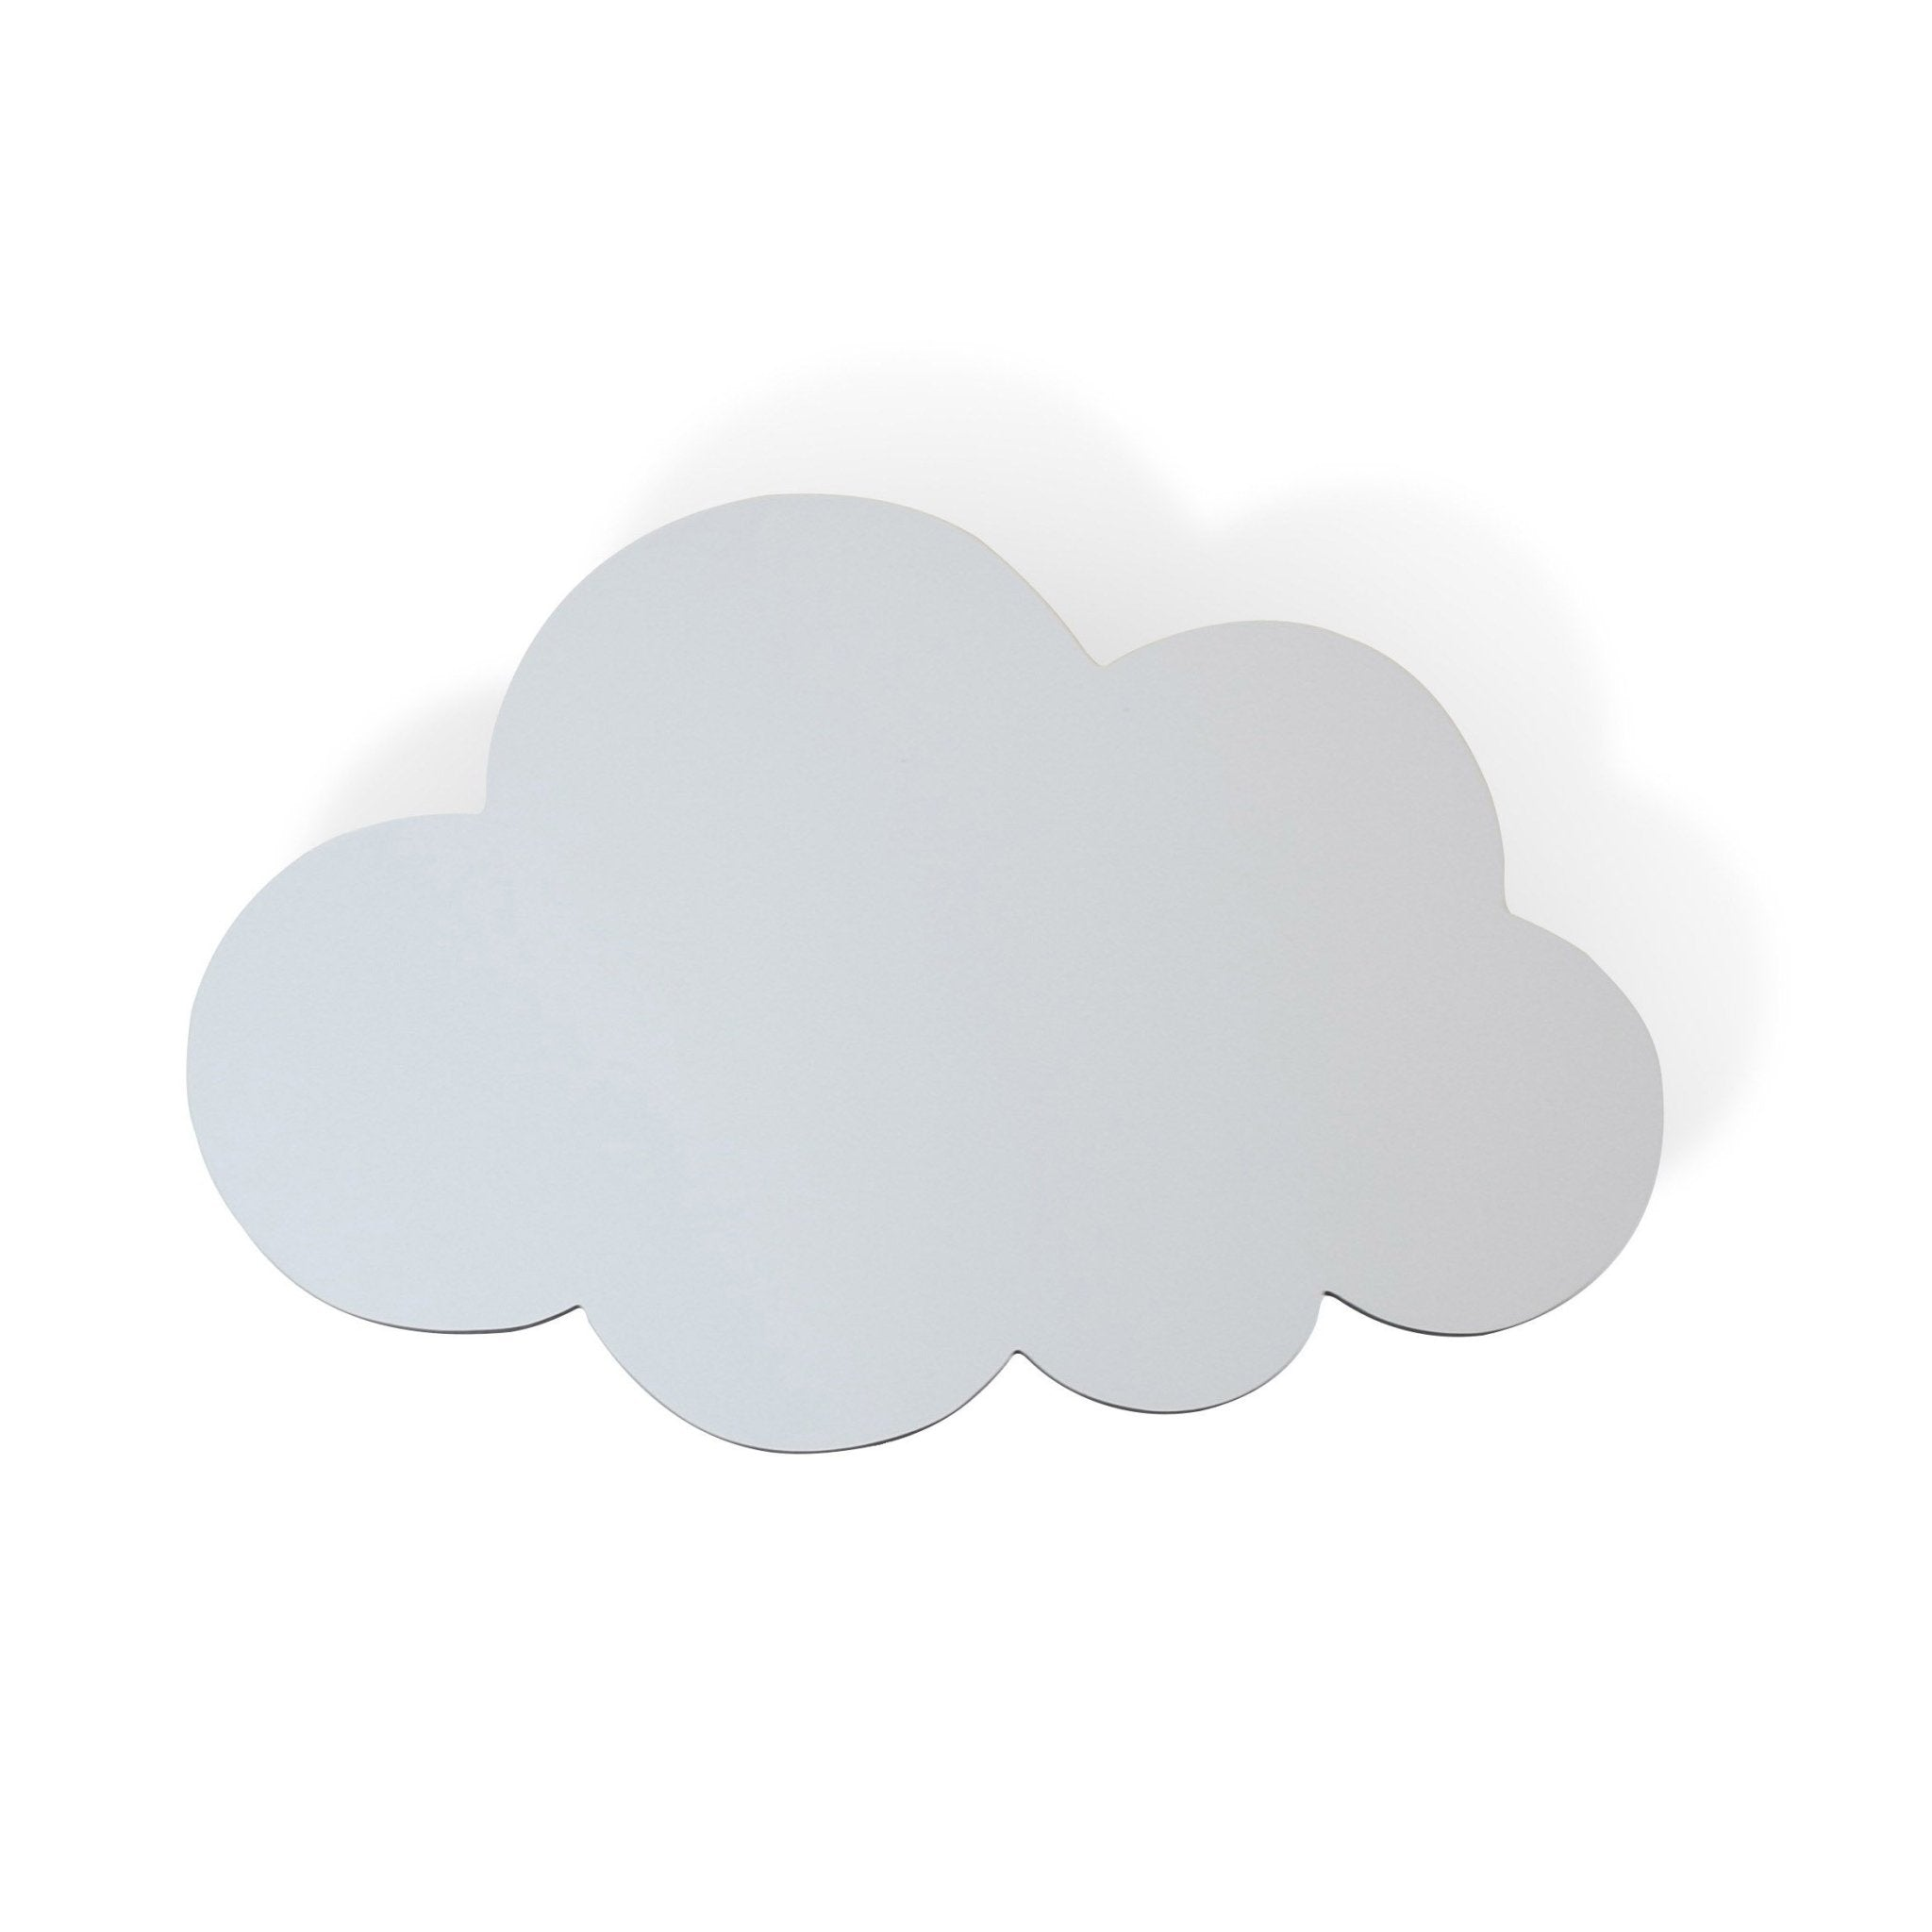 MaseLiving Cloud Lamp in White